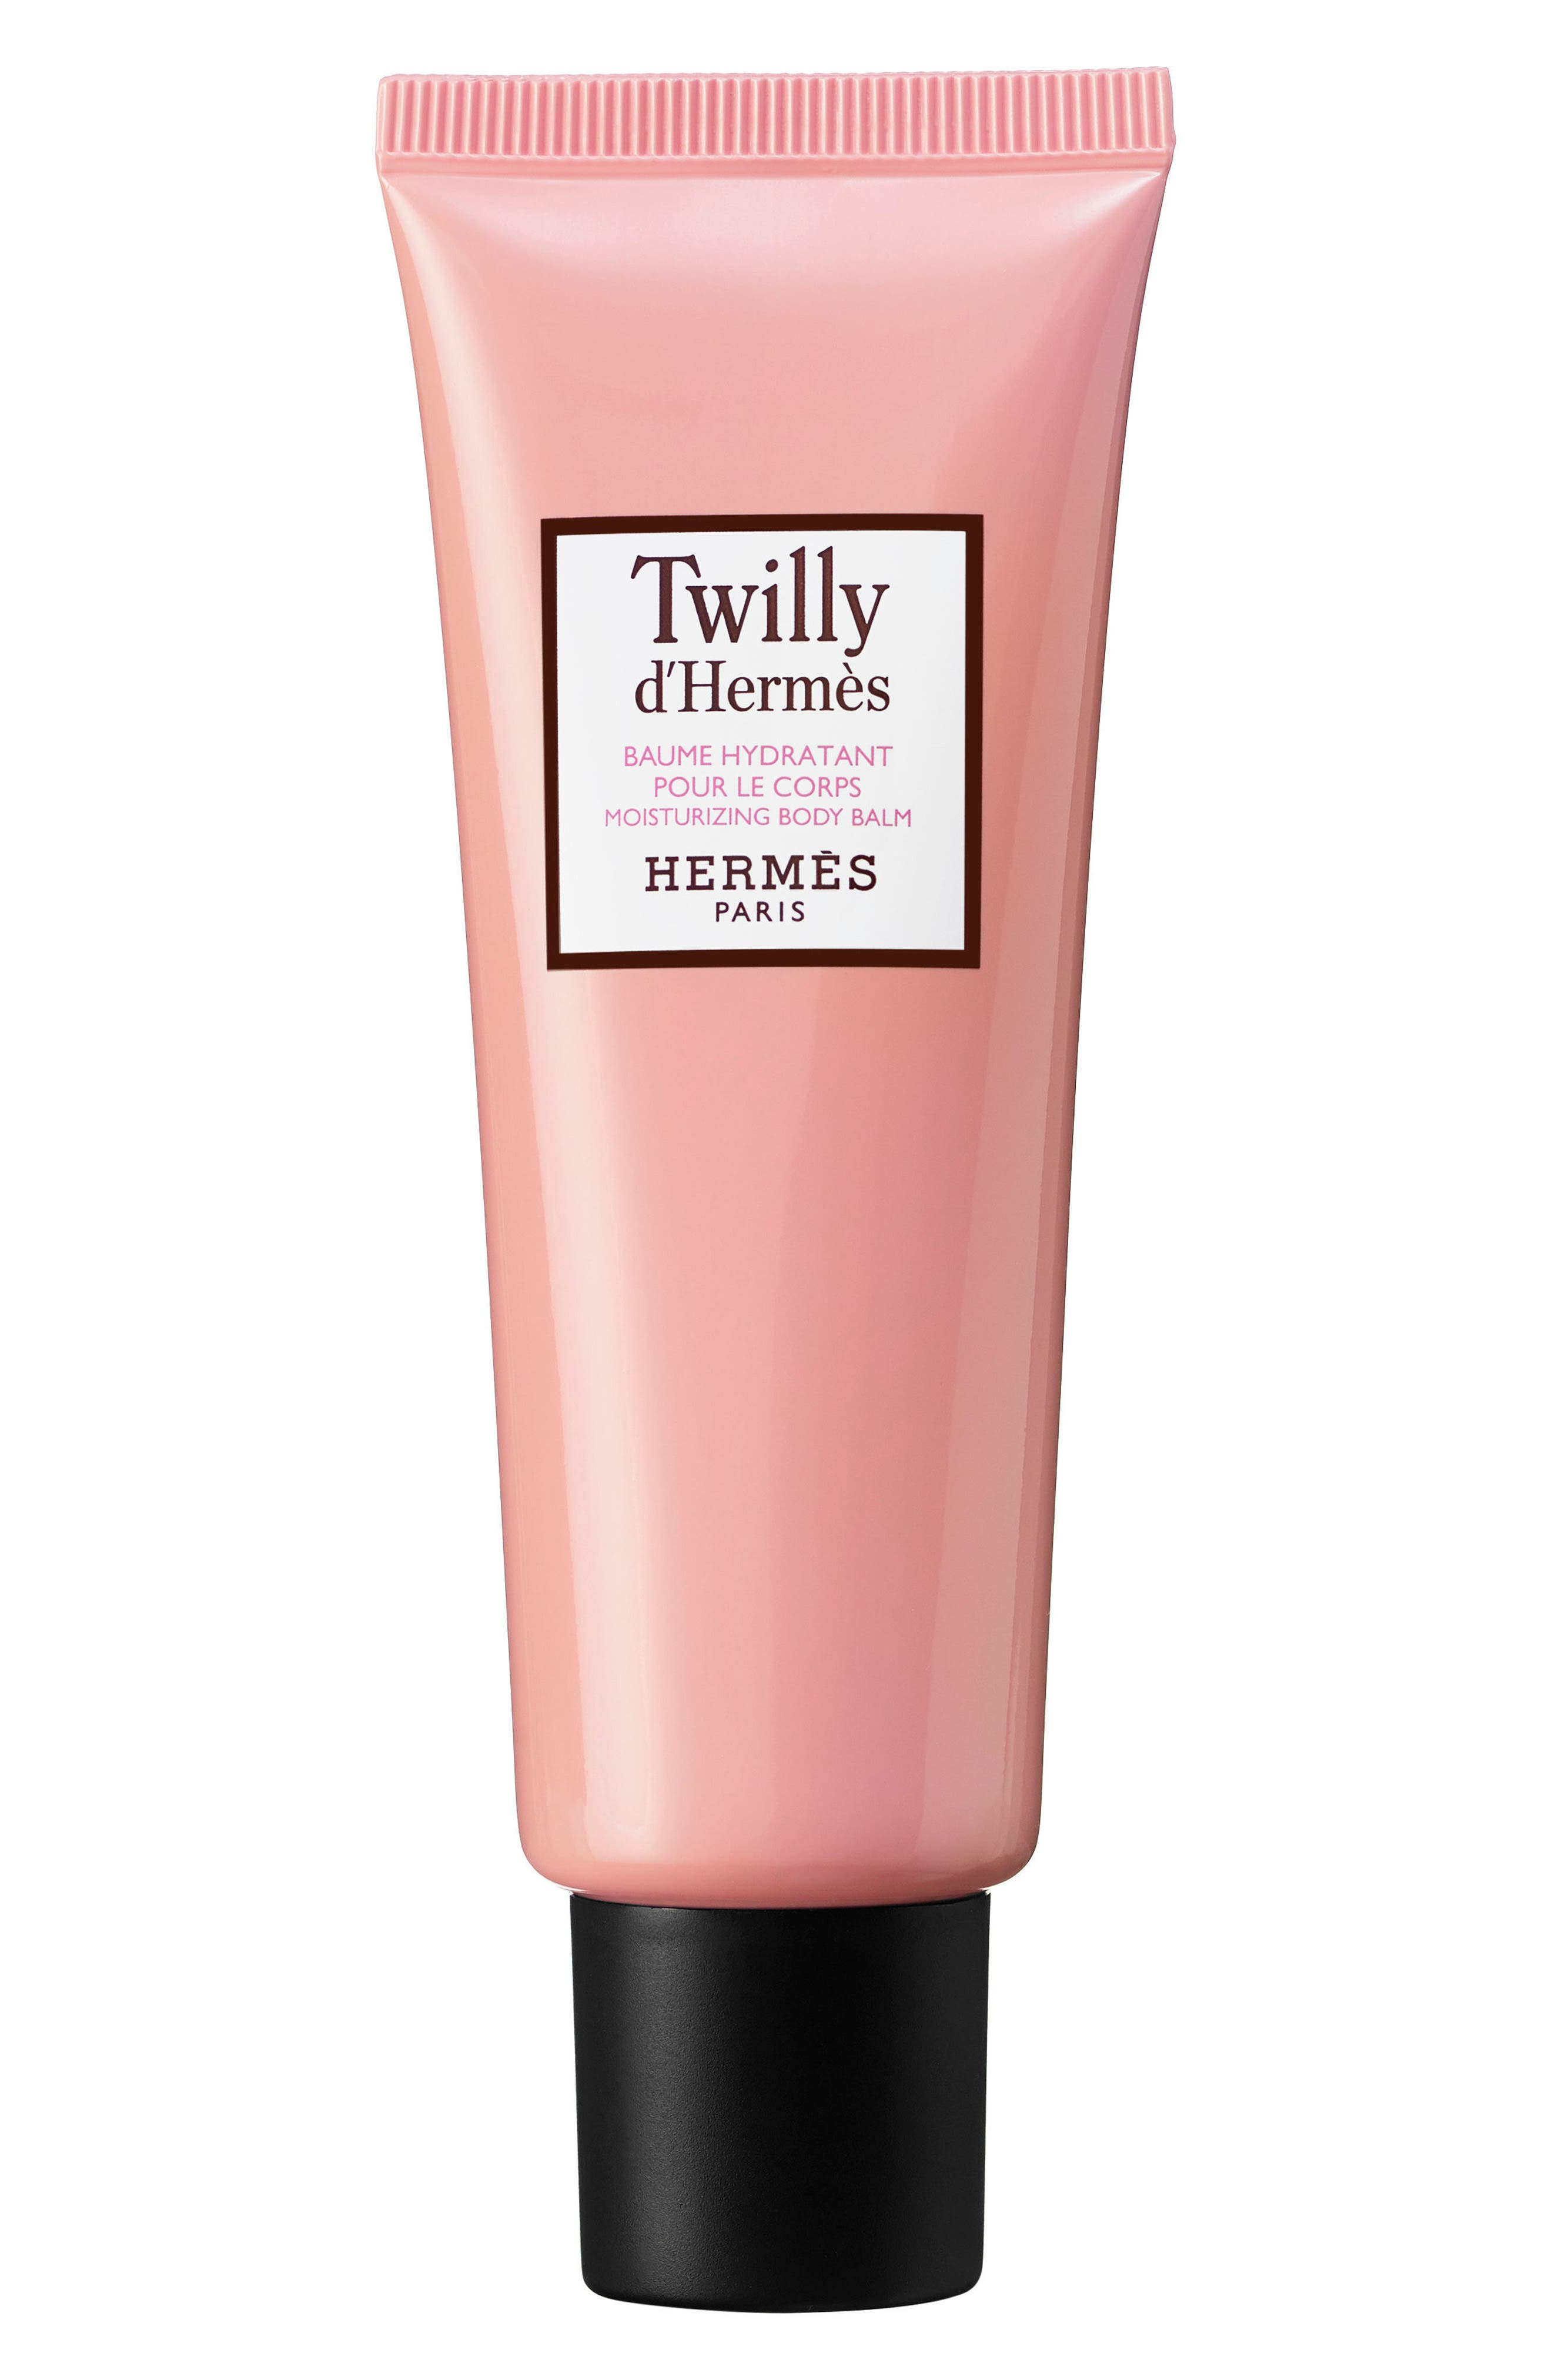 Twilly d'Hermès - Moisturizing body balm,                             Main thumbnail 1, color,                             NO COLOR